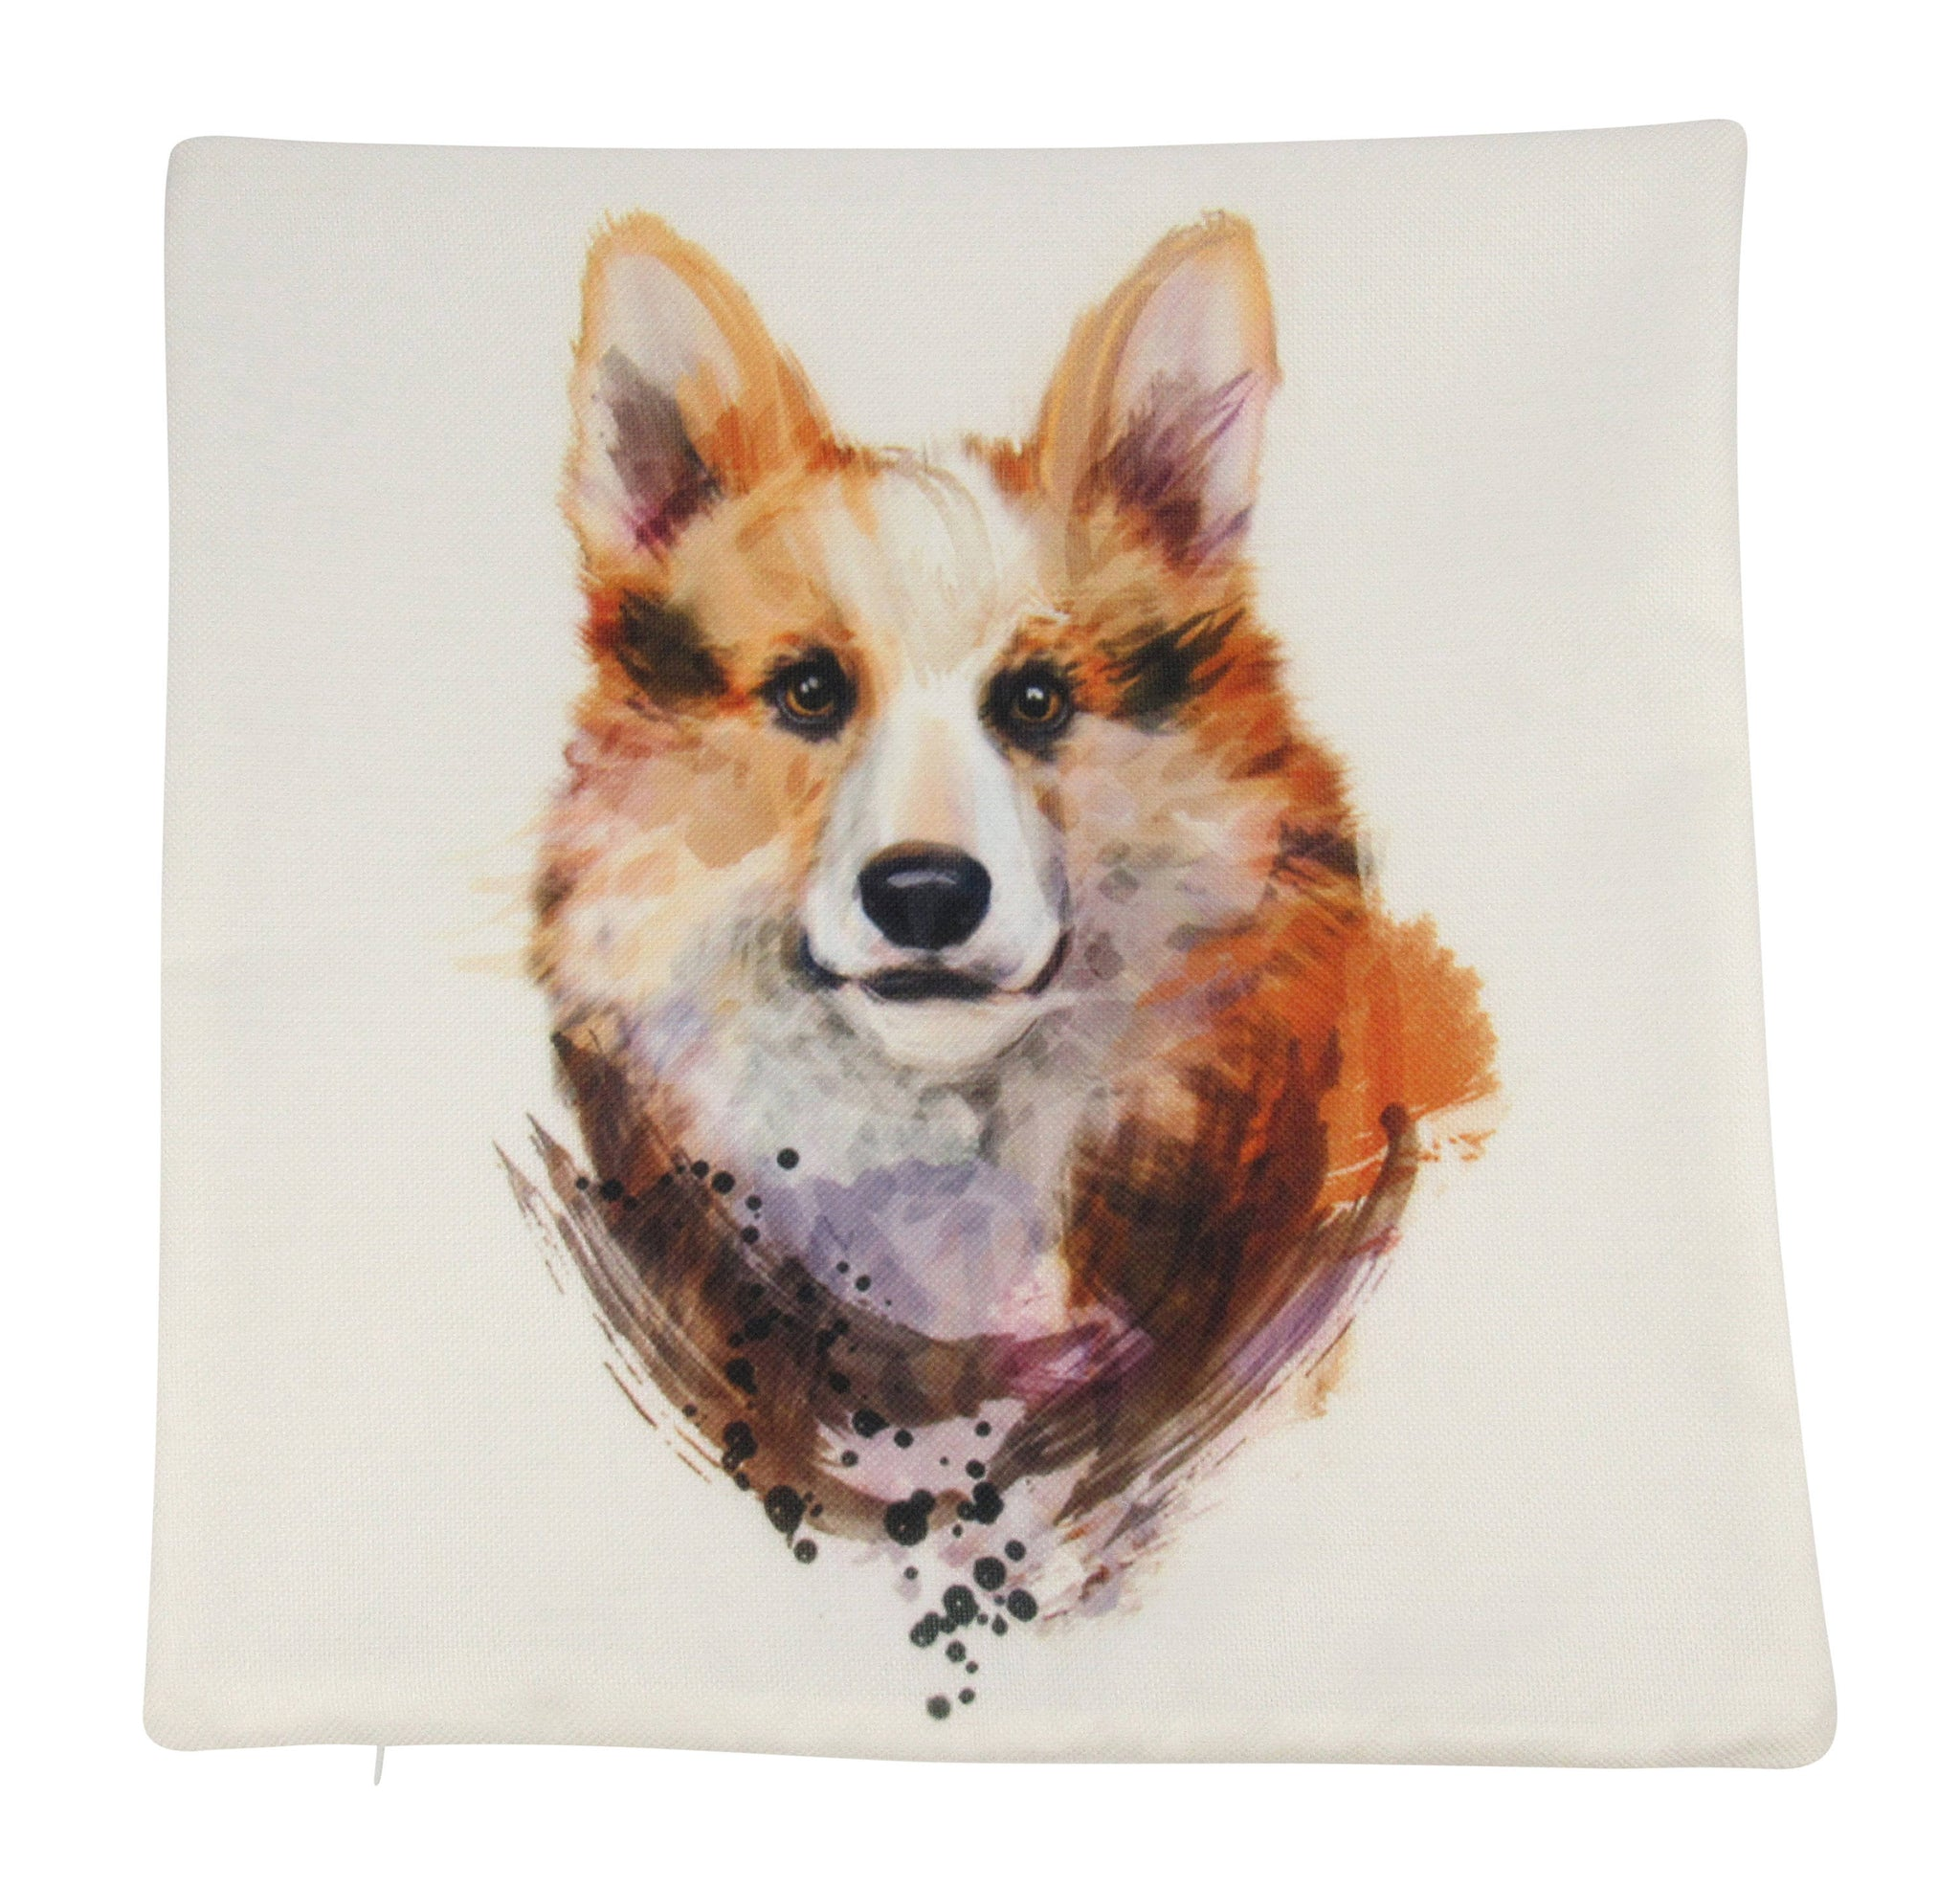 Corgi | Pillow Cover | Dogs | Home Decor | Custom Dog Pillow | Dog Mom | Corgi Lover Gift | Corgi